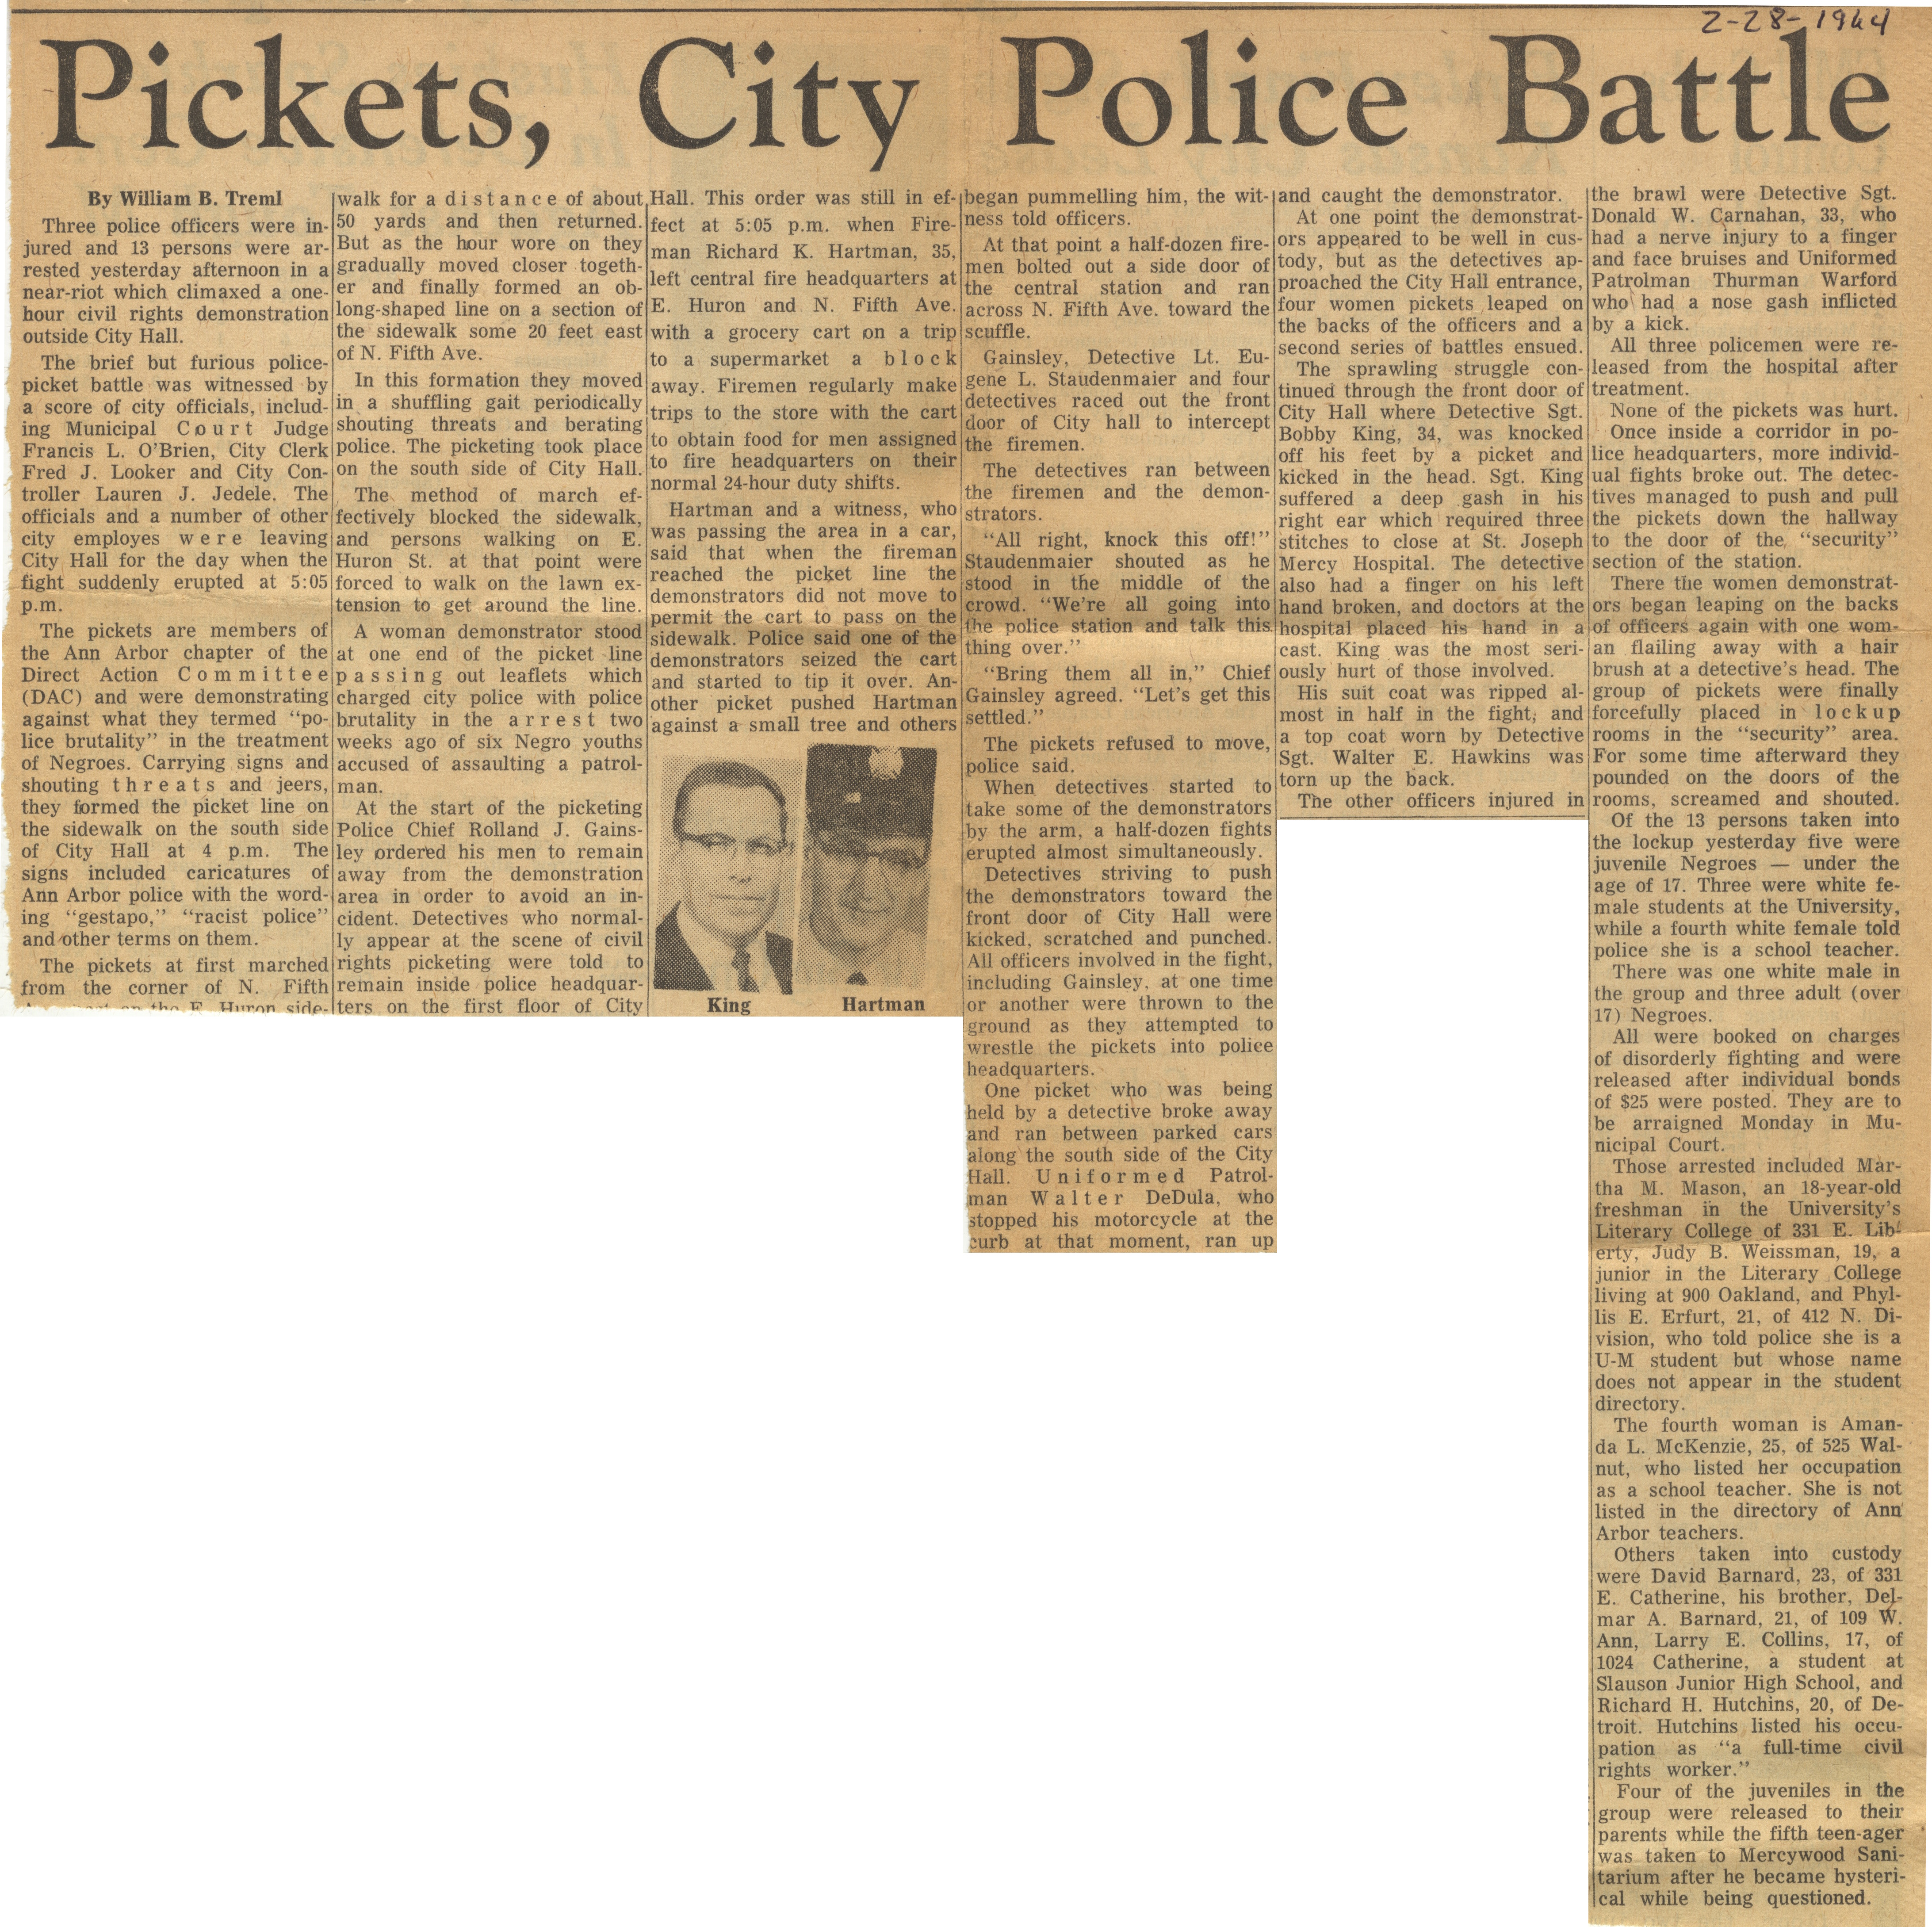 Pickets, City Police Battle image